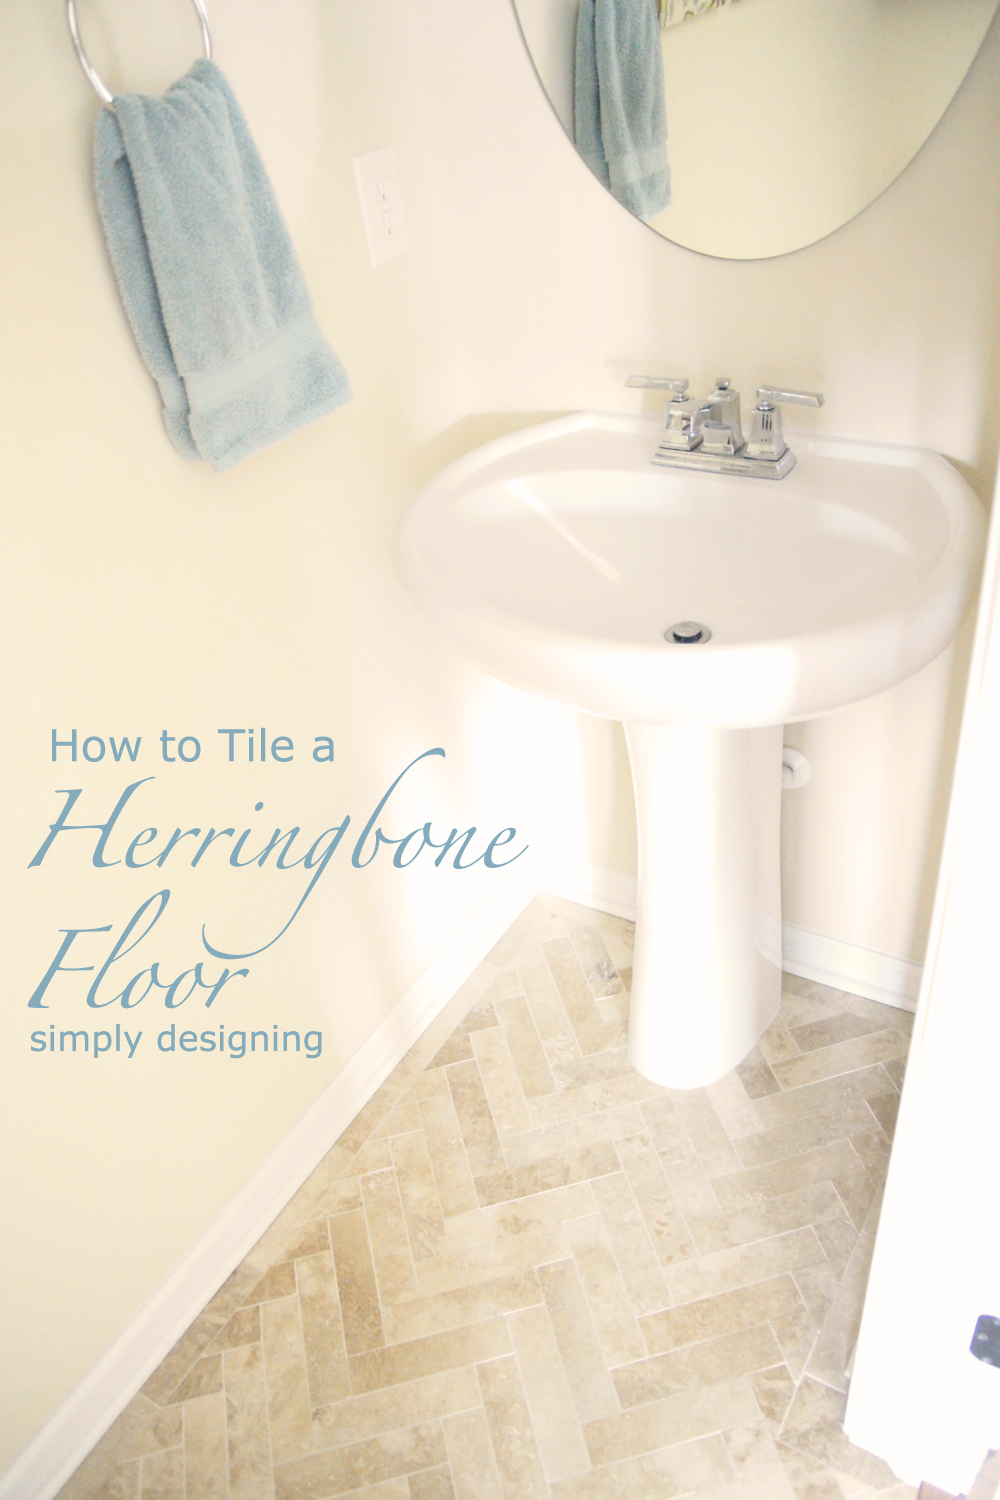 How to Install Herringbone Tile Floors | a complete tutorial for laying tile flooring and herringbone tile flooring | #diy #herringbone #tile #tilefloors #thetileshop @thetileshop